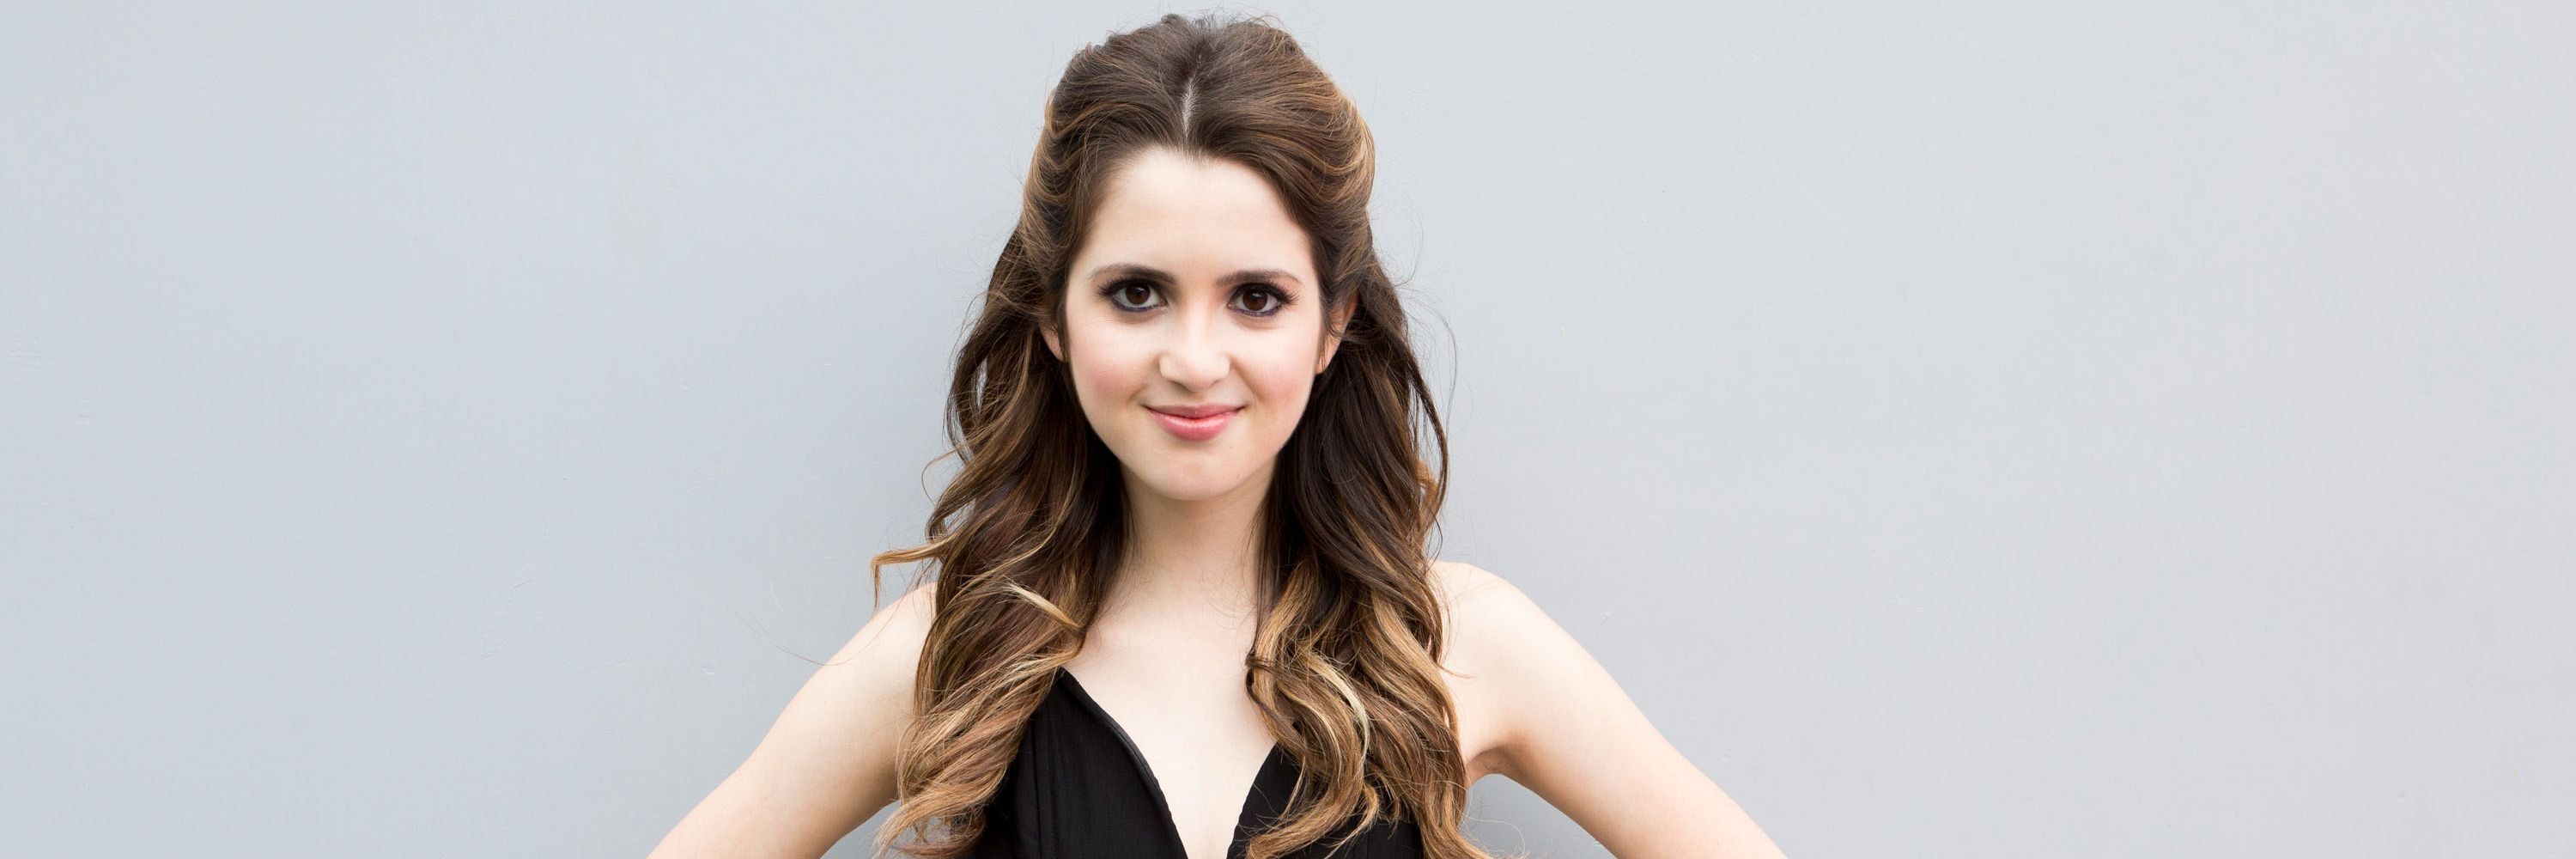 Disney Star Laura Marano Attempts to Apply Liquid Liner With Her EyesClosed photo